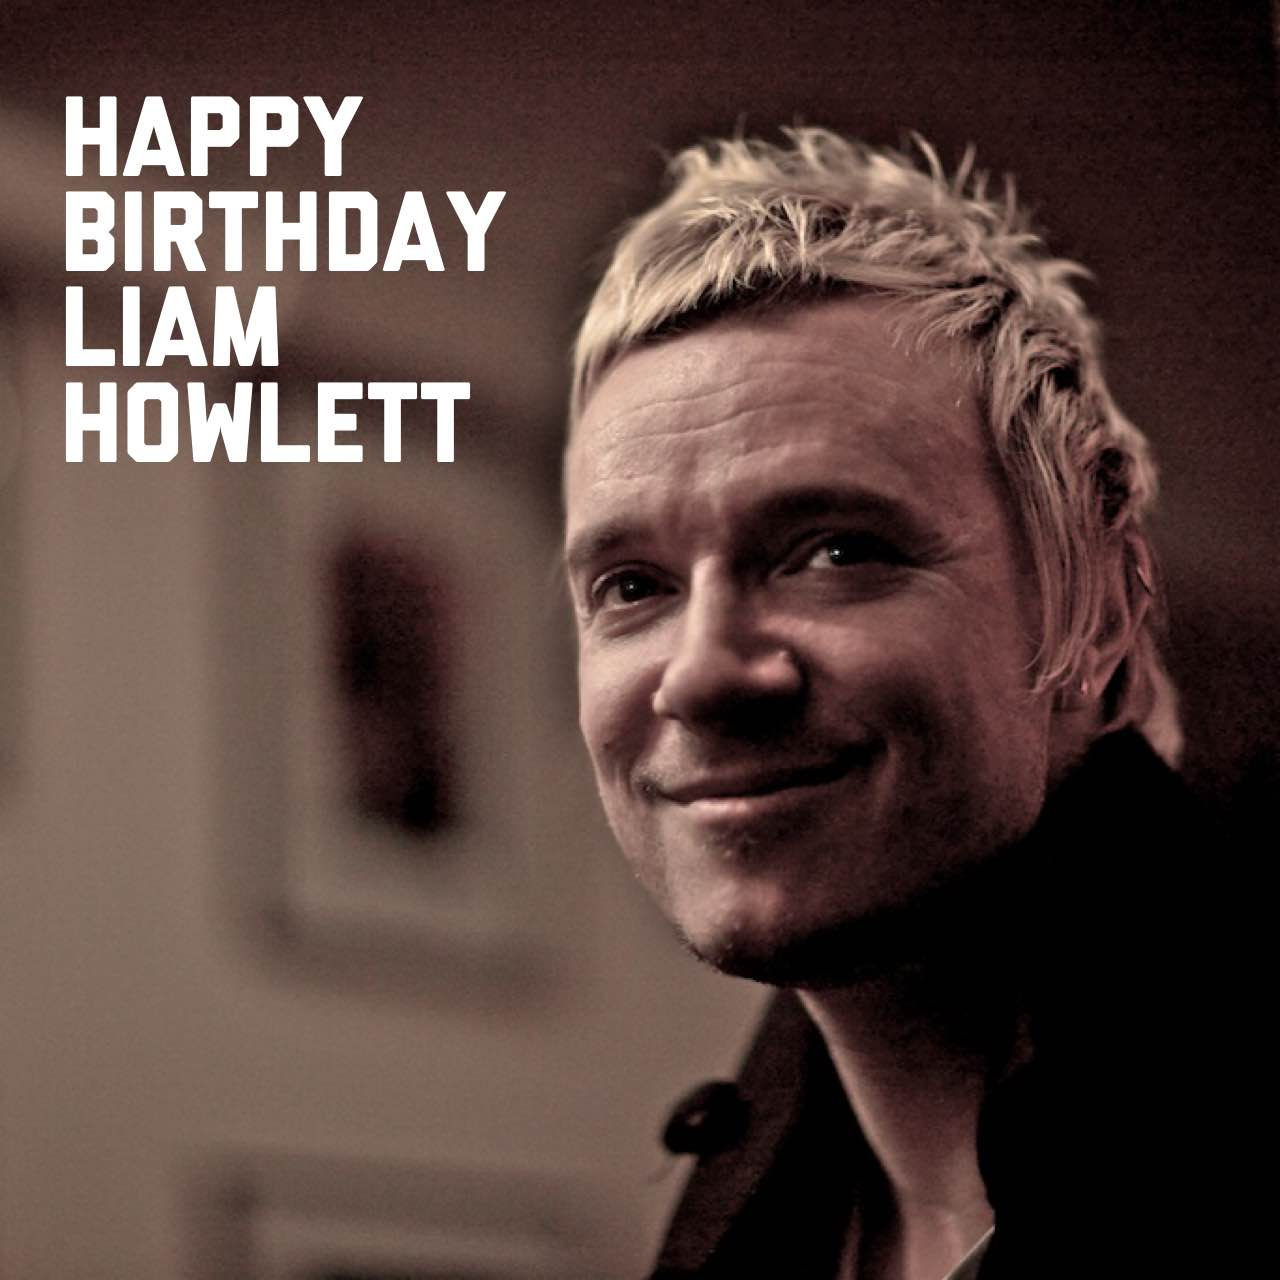 Happy Birthday Liam Howlett – Our Main Man is now 45 Years Old!